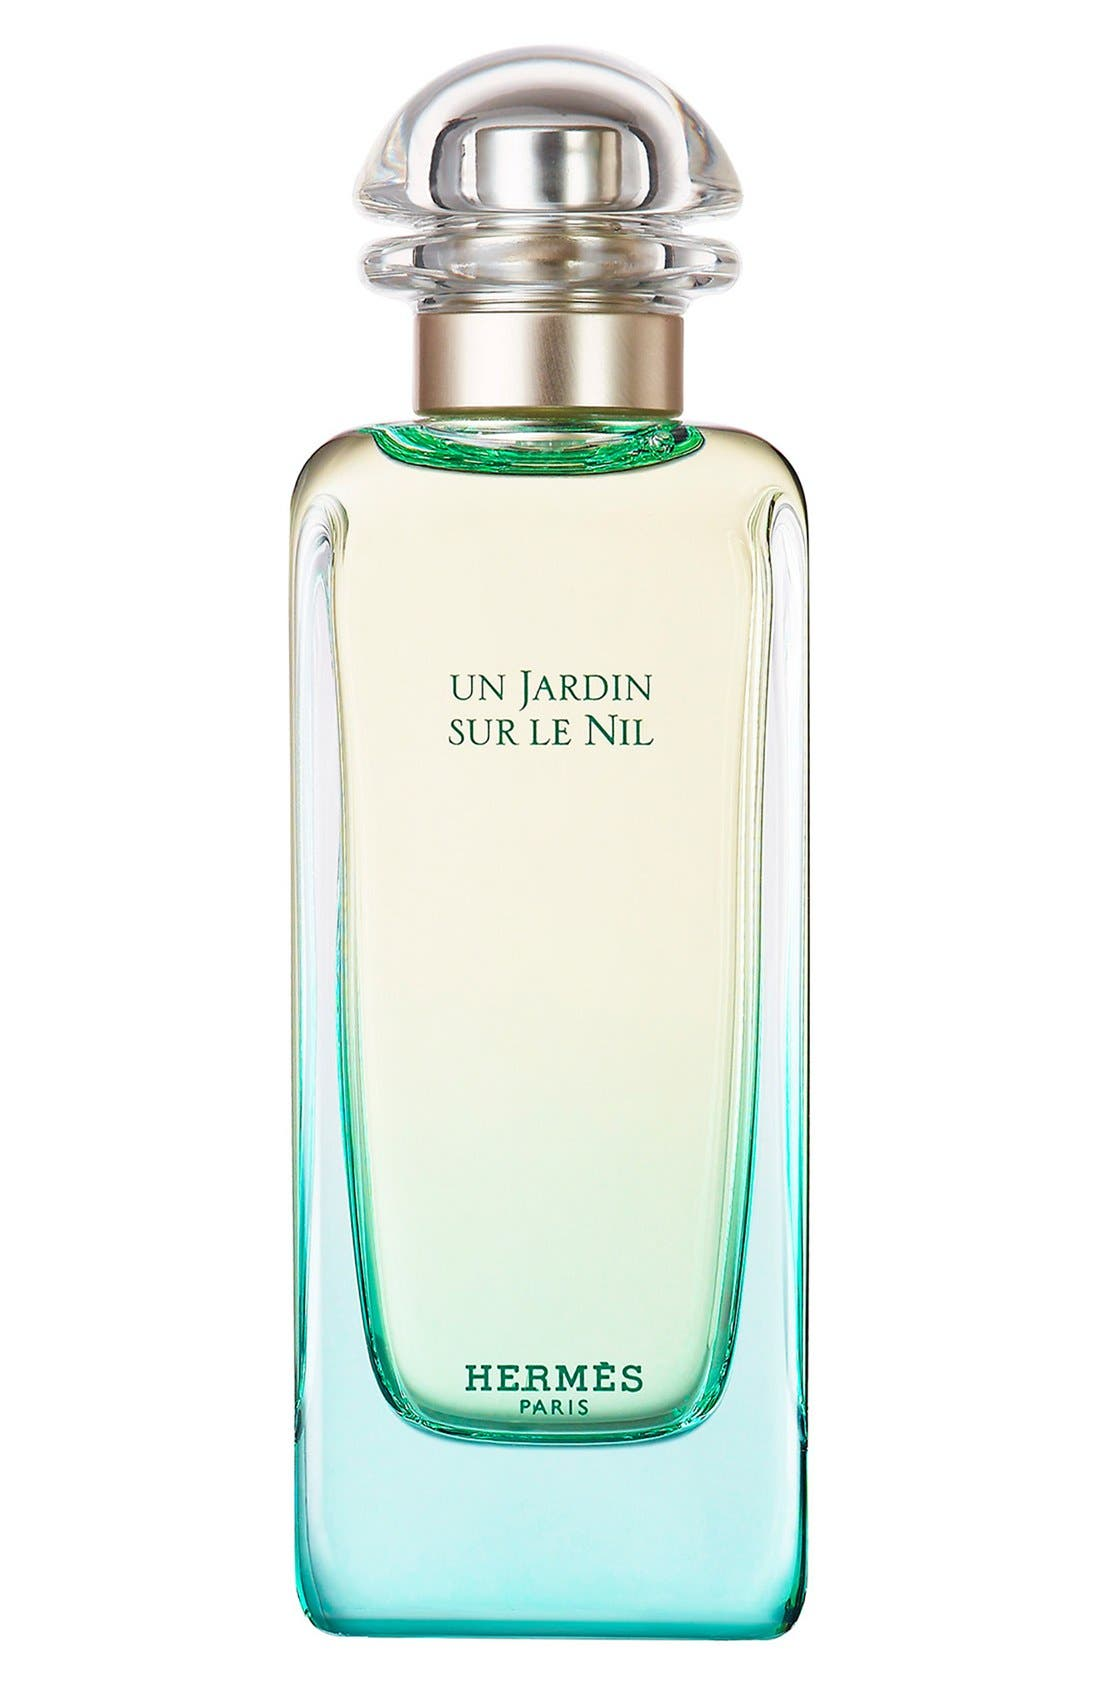 Un Jardin sur le Nil - Eau de toilette,                             Main thumbnail 1, color,                             NO COLOR